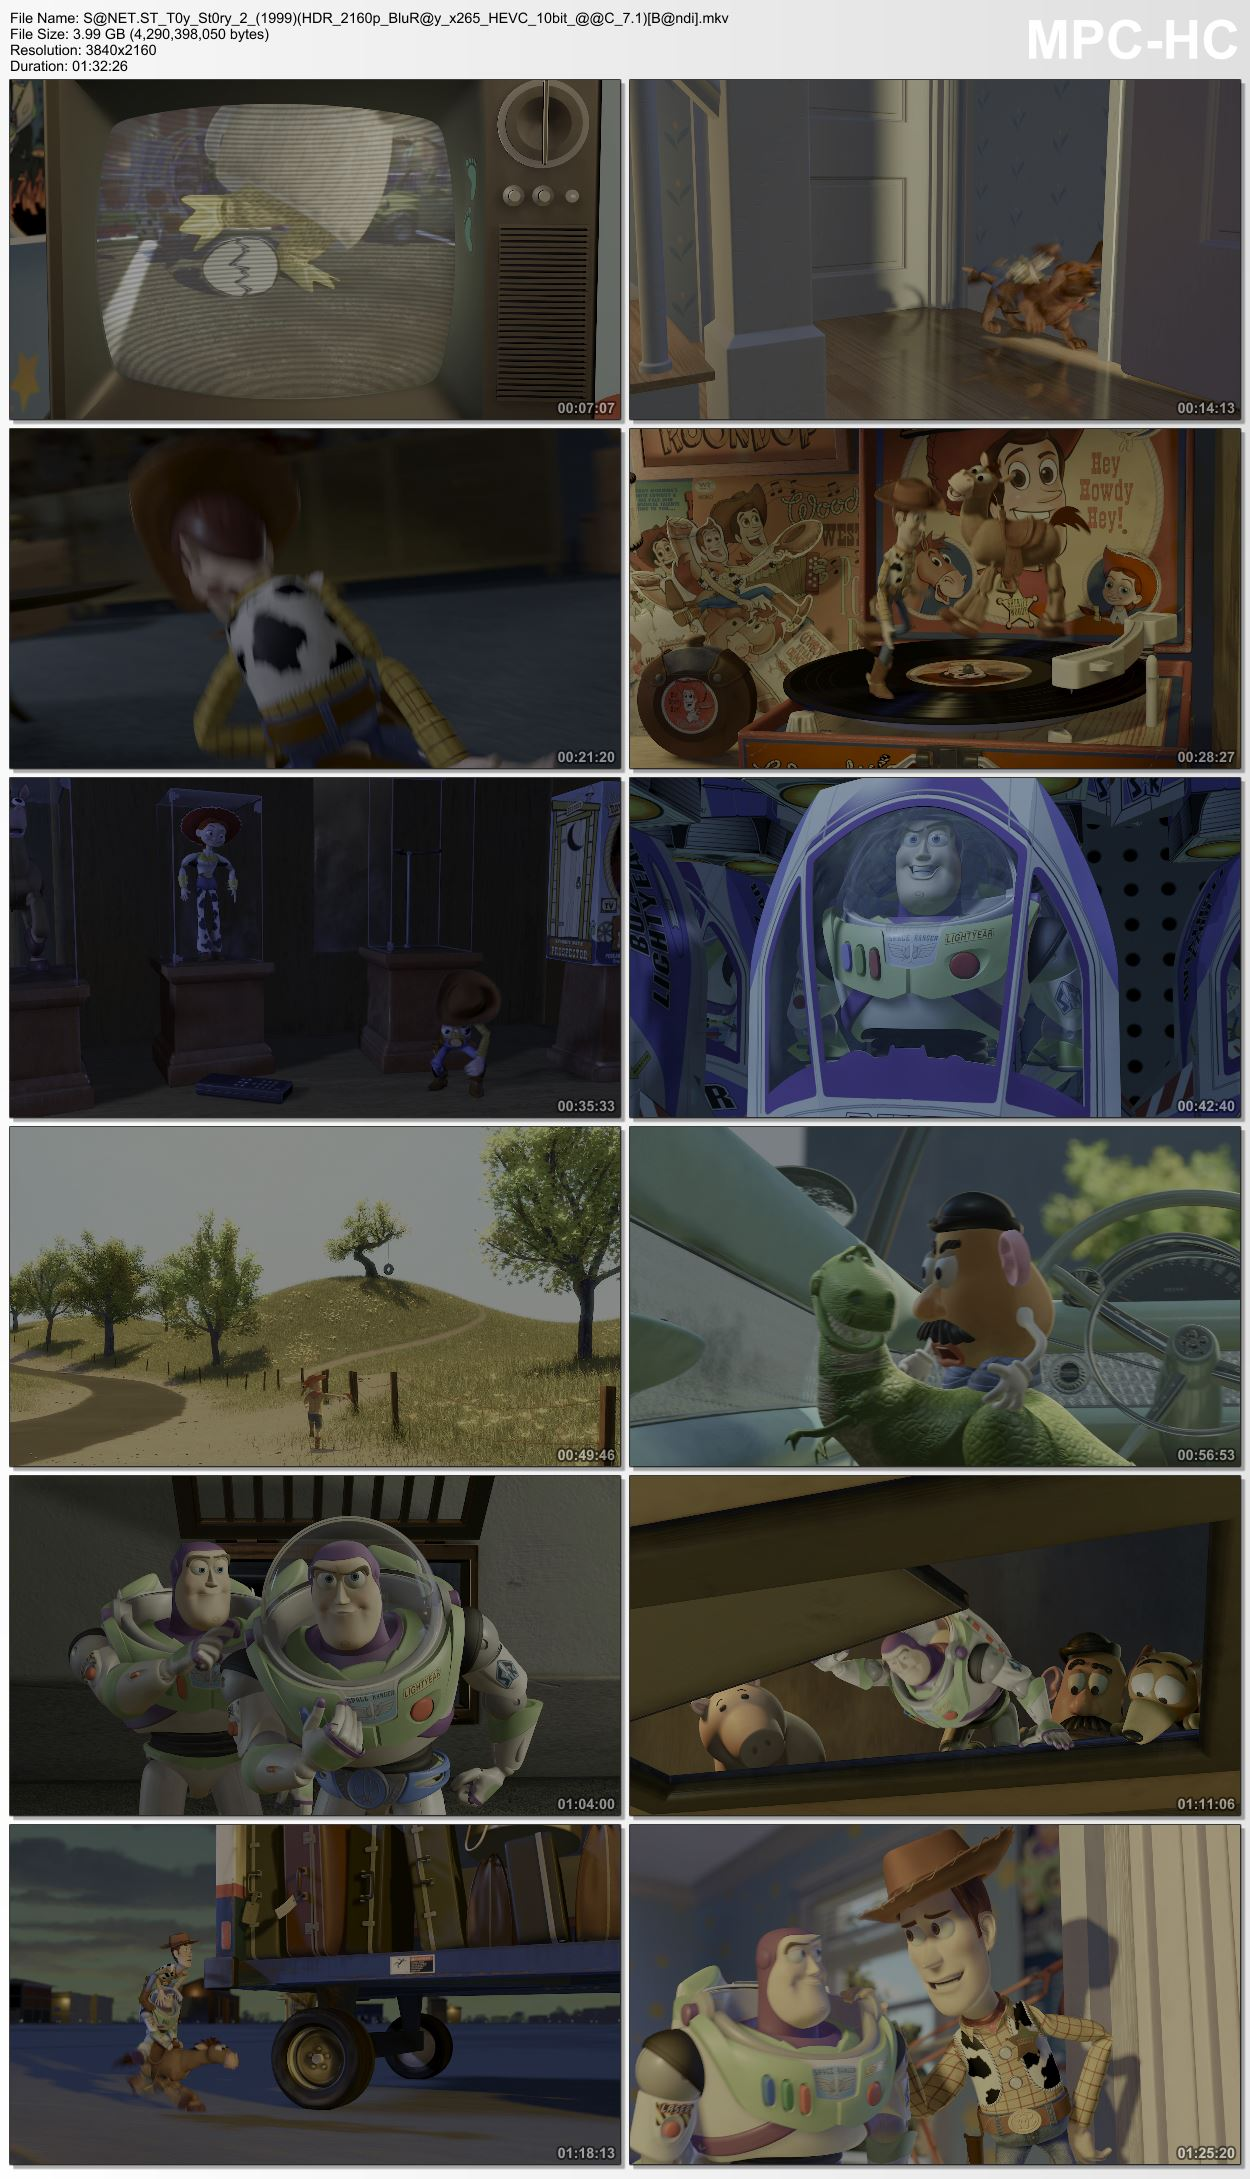 Download Toy Story 2 1999 HDR 2160p BluRay x265 HEVC 10bit AAC 7 1